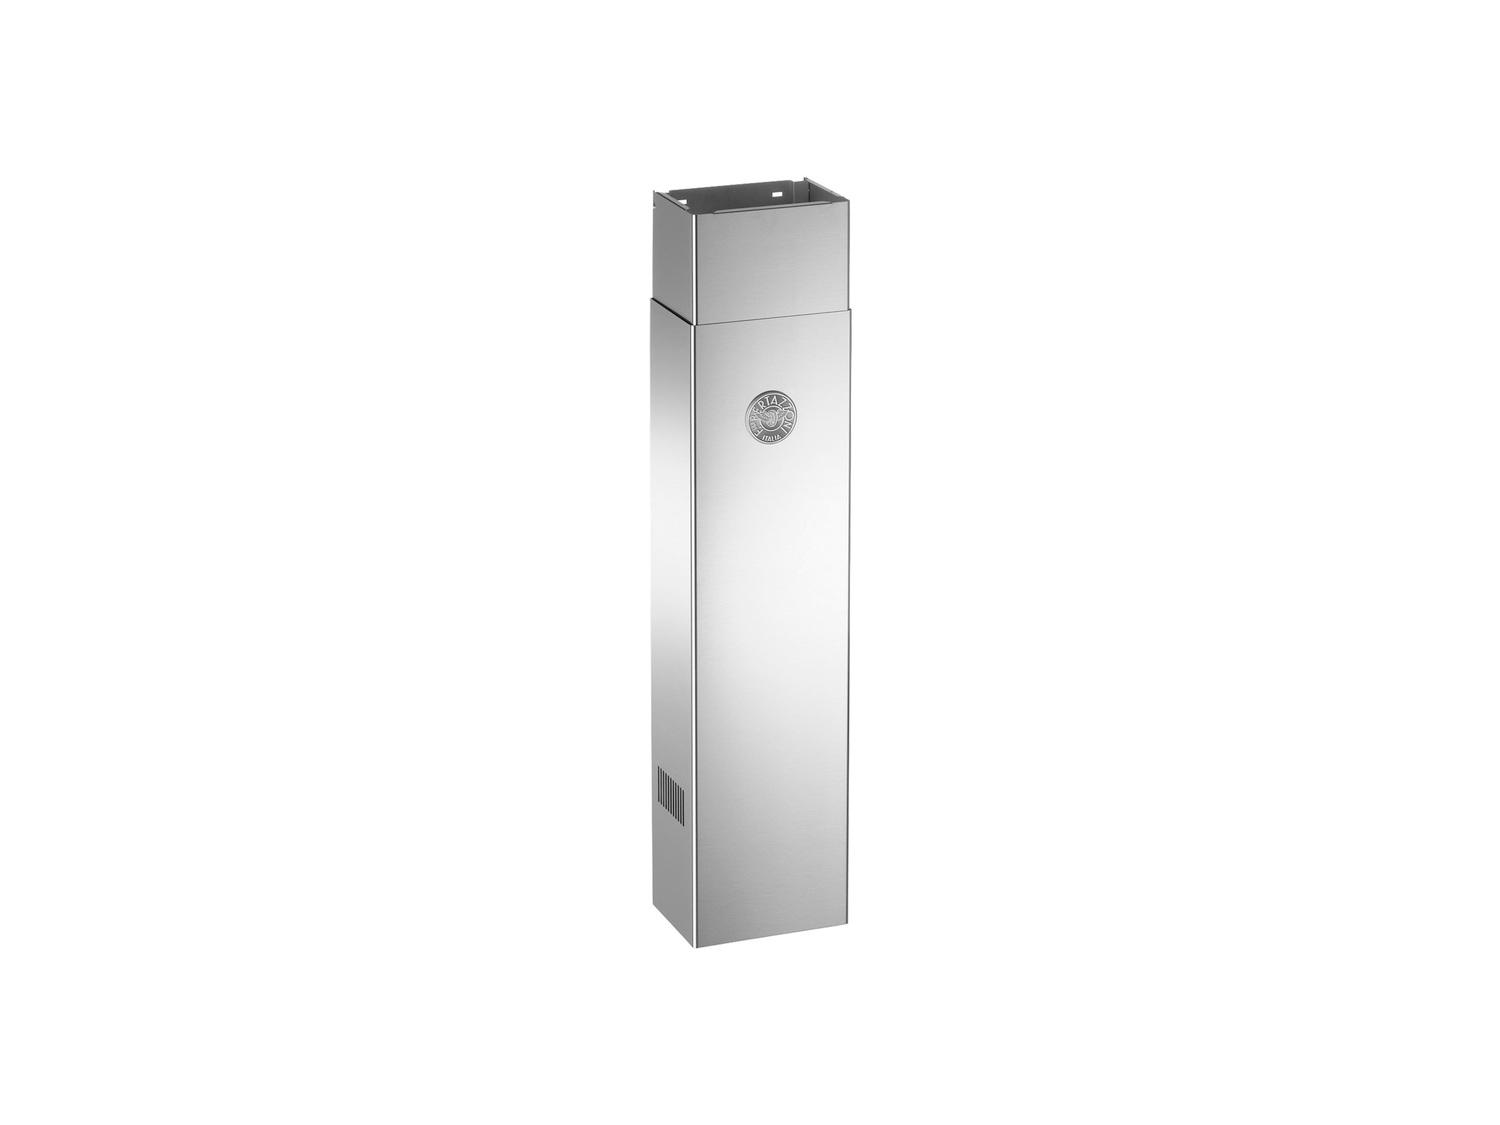 """Duct Cover Narrow - Tall - up to 12"""" ceiling for KU models Stainless Steel"""